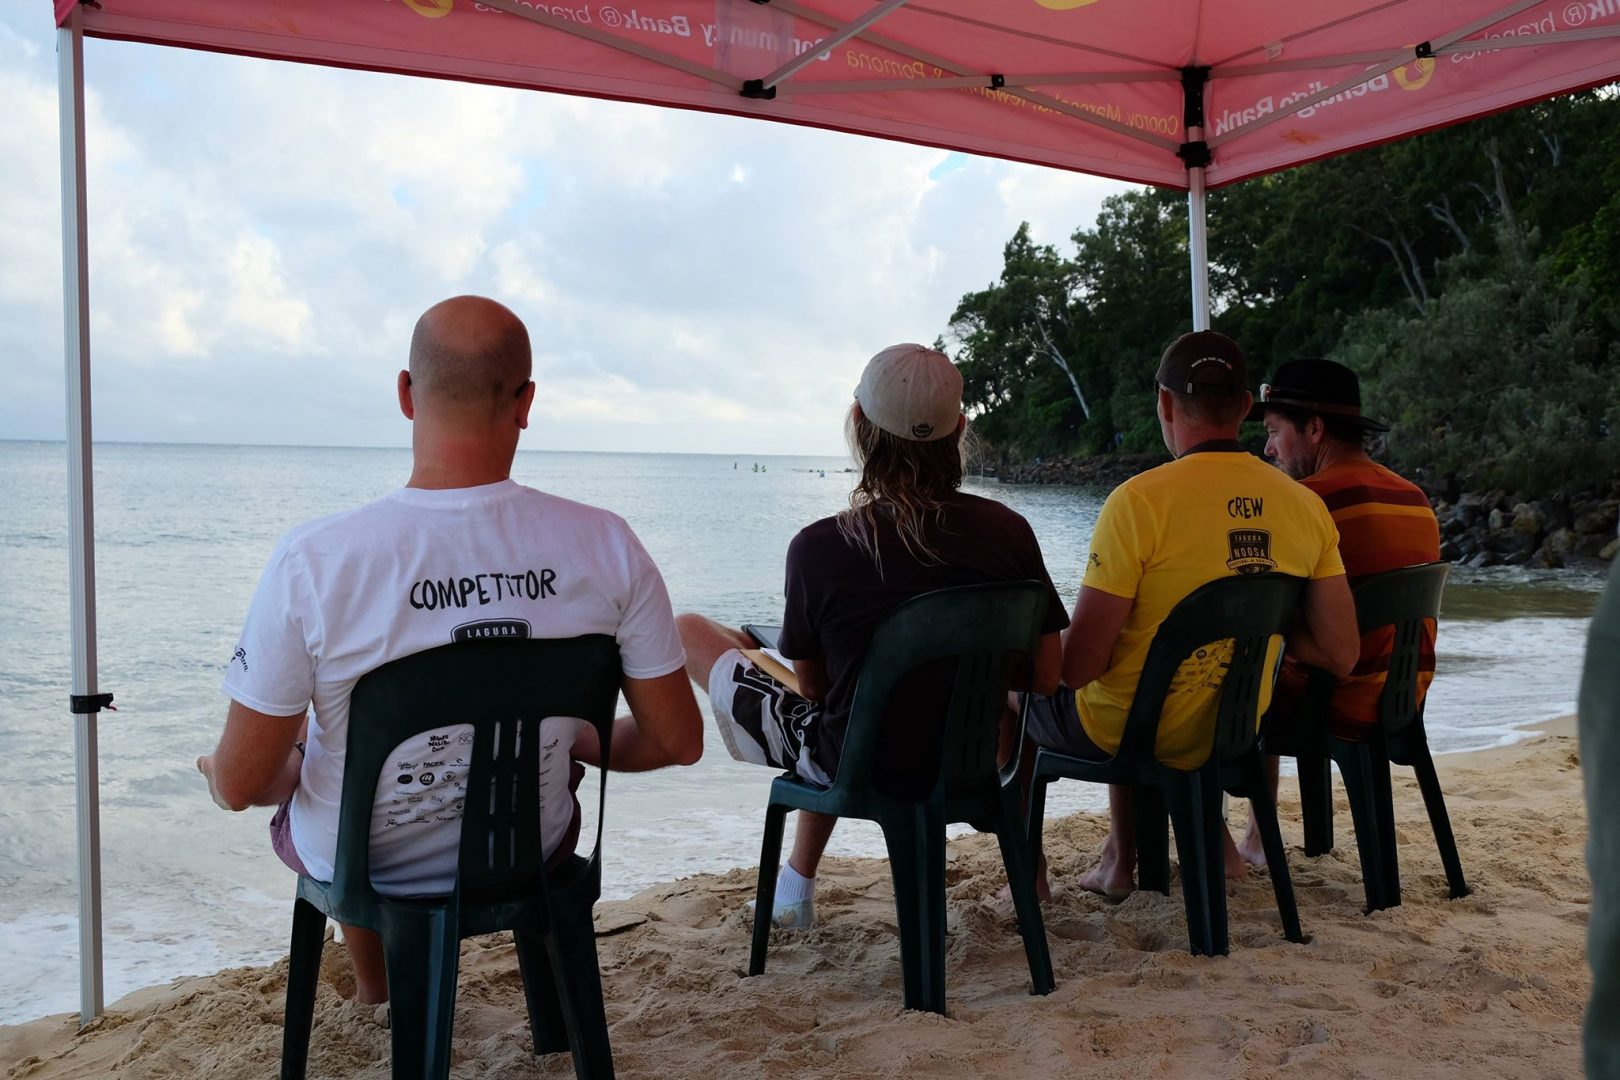 Noosa Festival of Surfing – Challenges of judging this iconic event